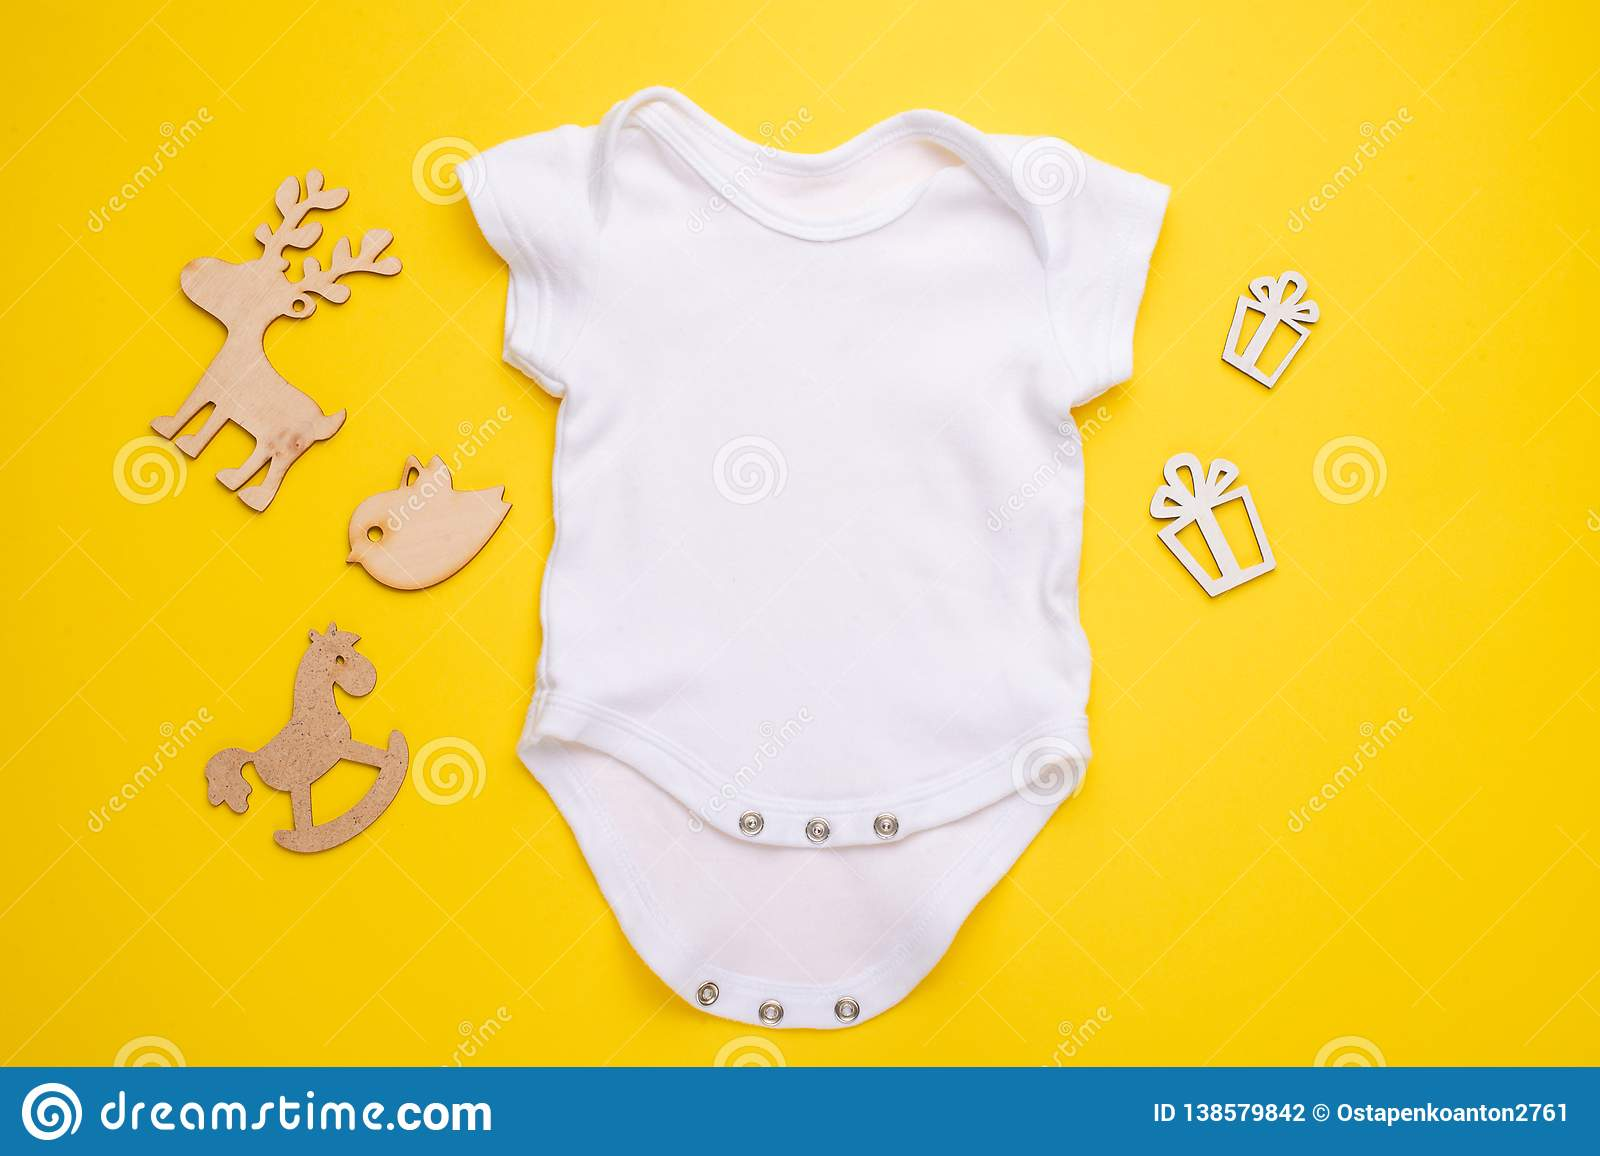 Mockup Flat Lay A White Baby Shirt With Wooden Toys On A Yellow